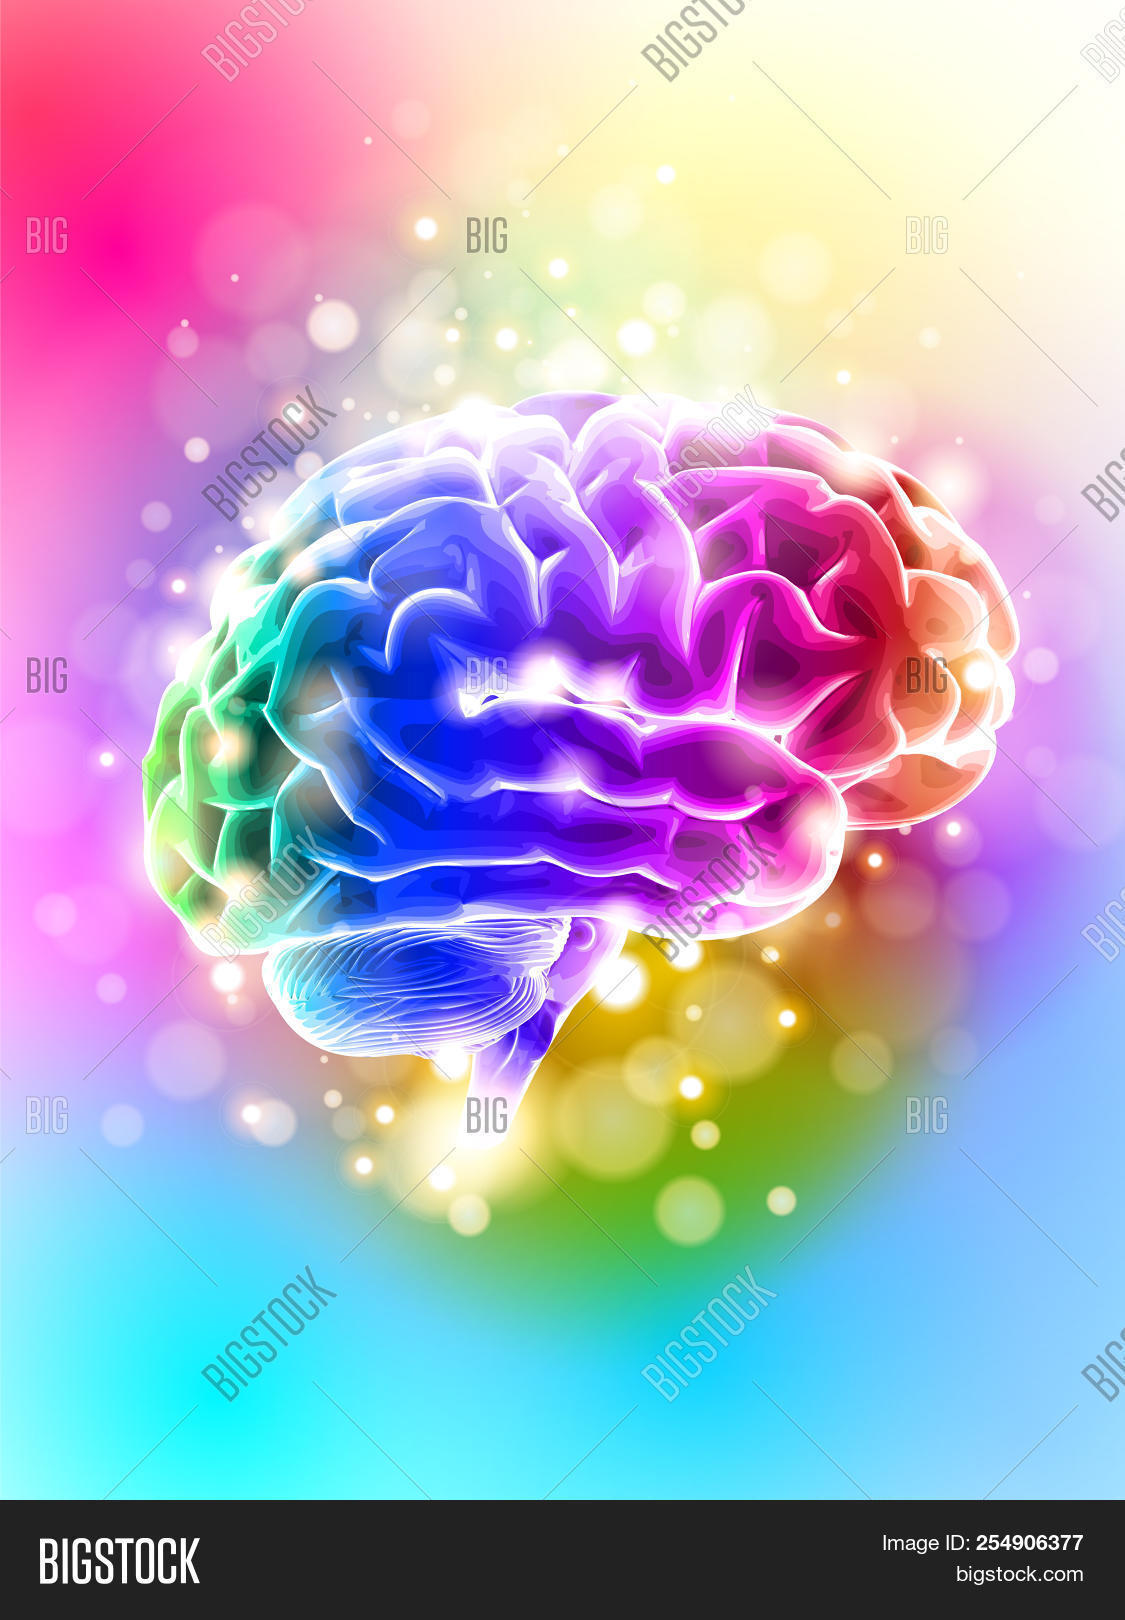 abstract,anatomy,art,artificial,background,biology,blue,body,brain,brainstorm,cell,cerebellum,concept,creative,creativity,design,education,genius,graphic,head,health,human,icon,id,idea,identification,illustration,innovation,intelligence,intelligent,isolated,knowledge,learning,logo,medical,medicine,mind,nervous,neurology,organ,psychology,science,sign,smart,symbol,system,technology